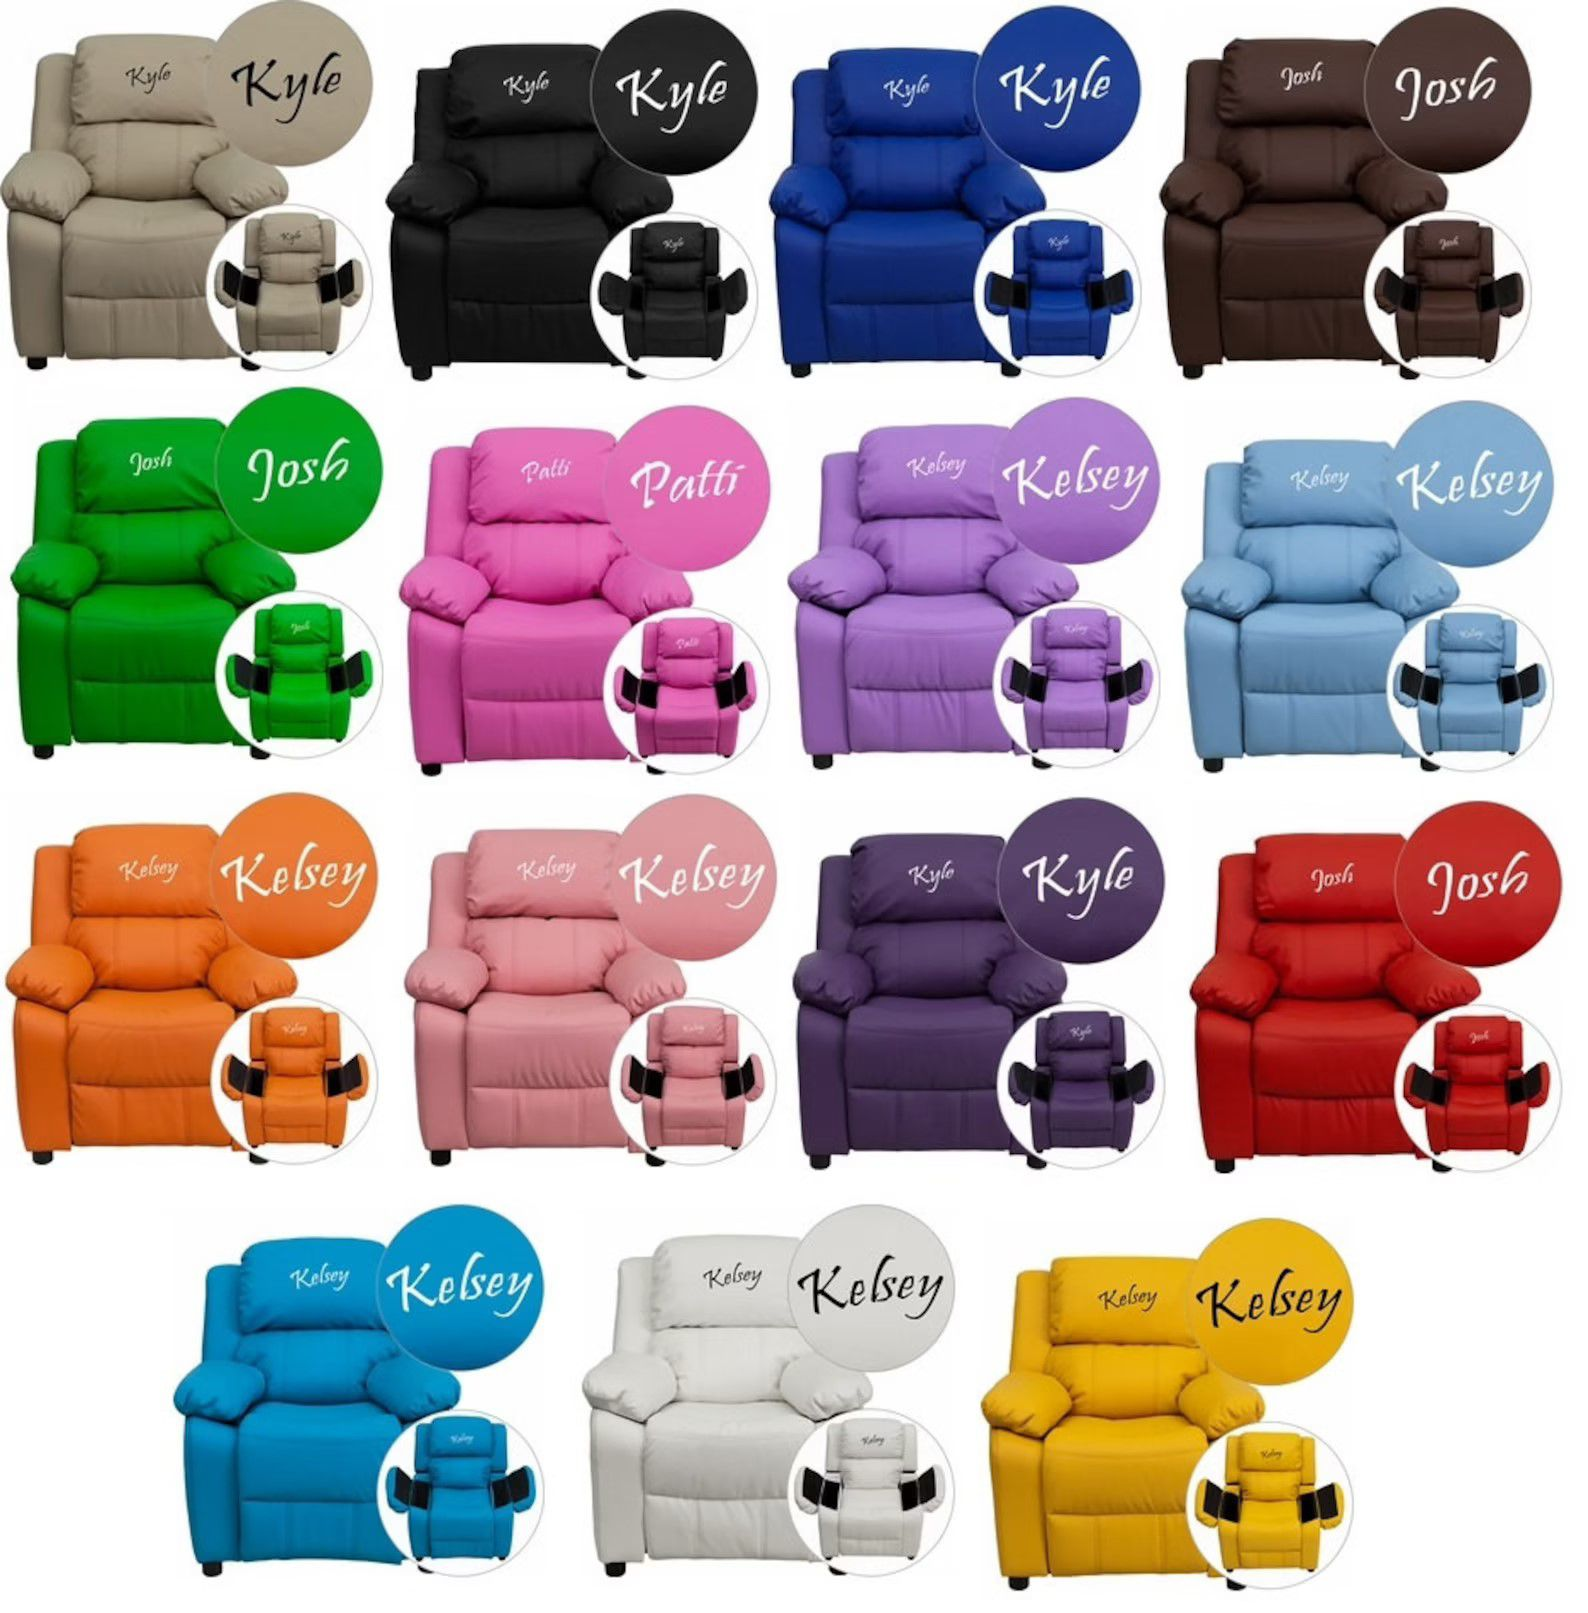 collection of different colored armchairs with names on headrests and armrests that open